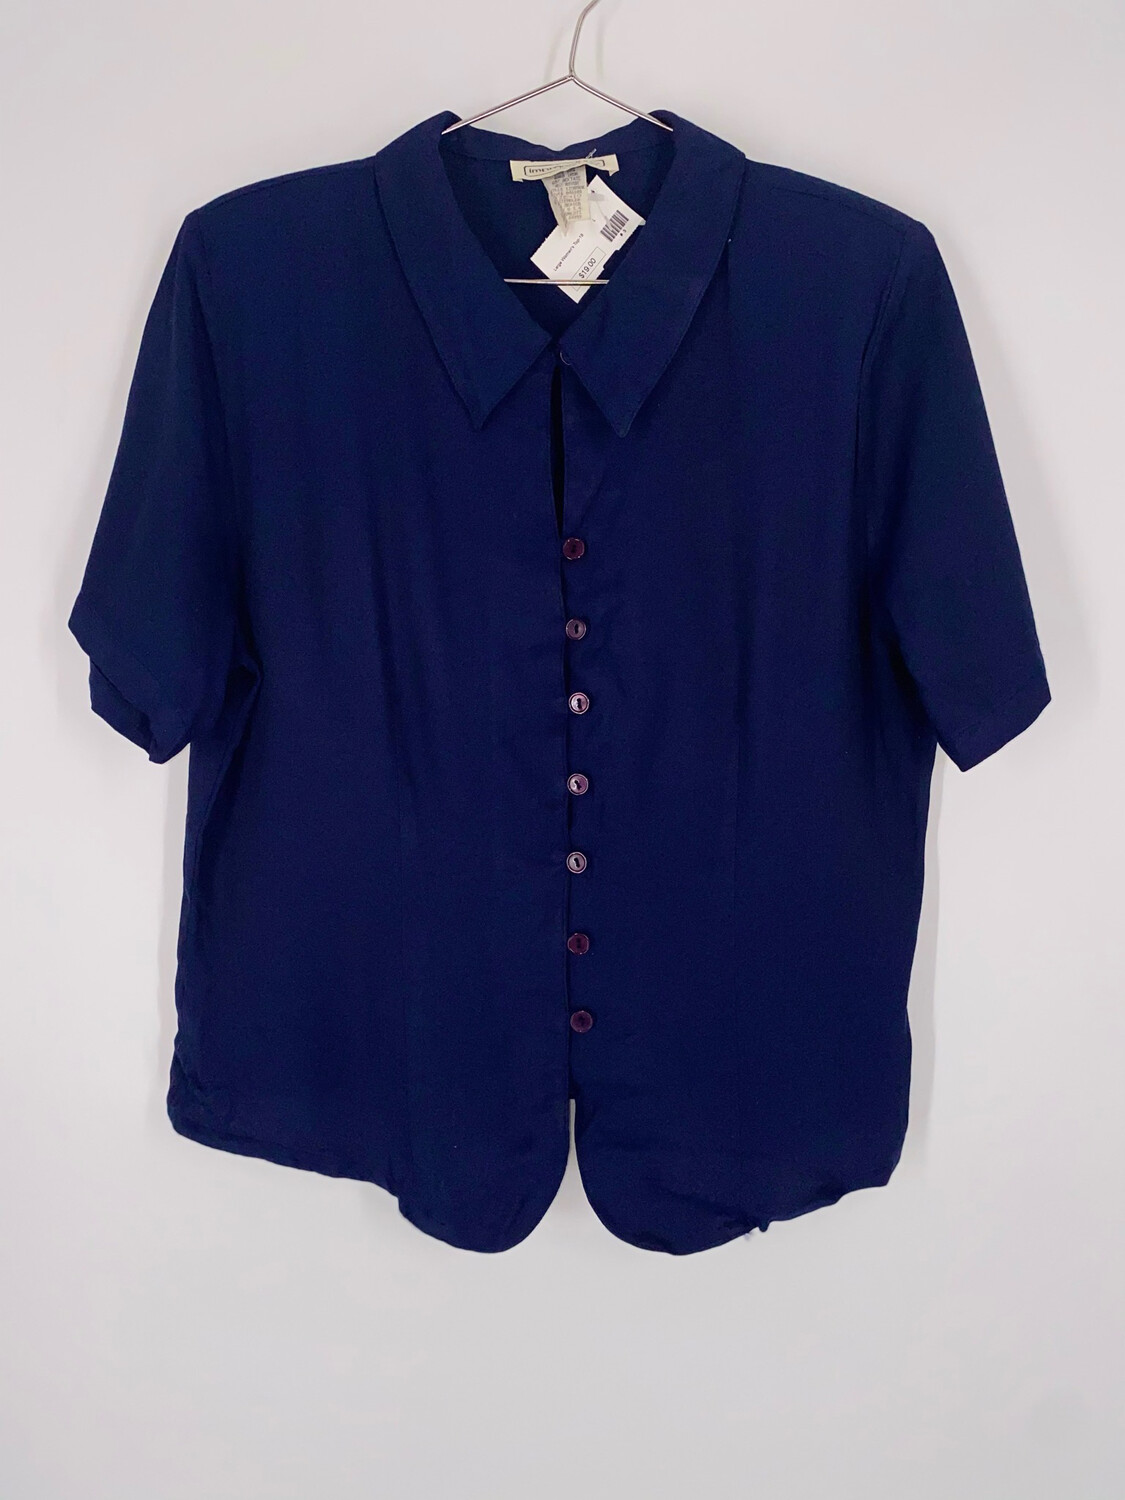 Impressions Navy Button Up Top Size M